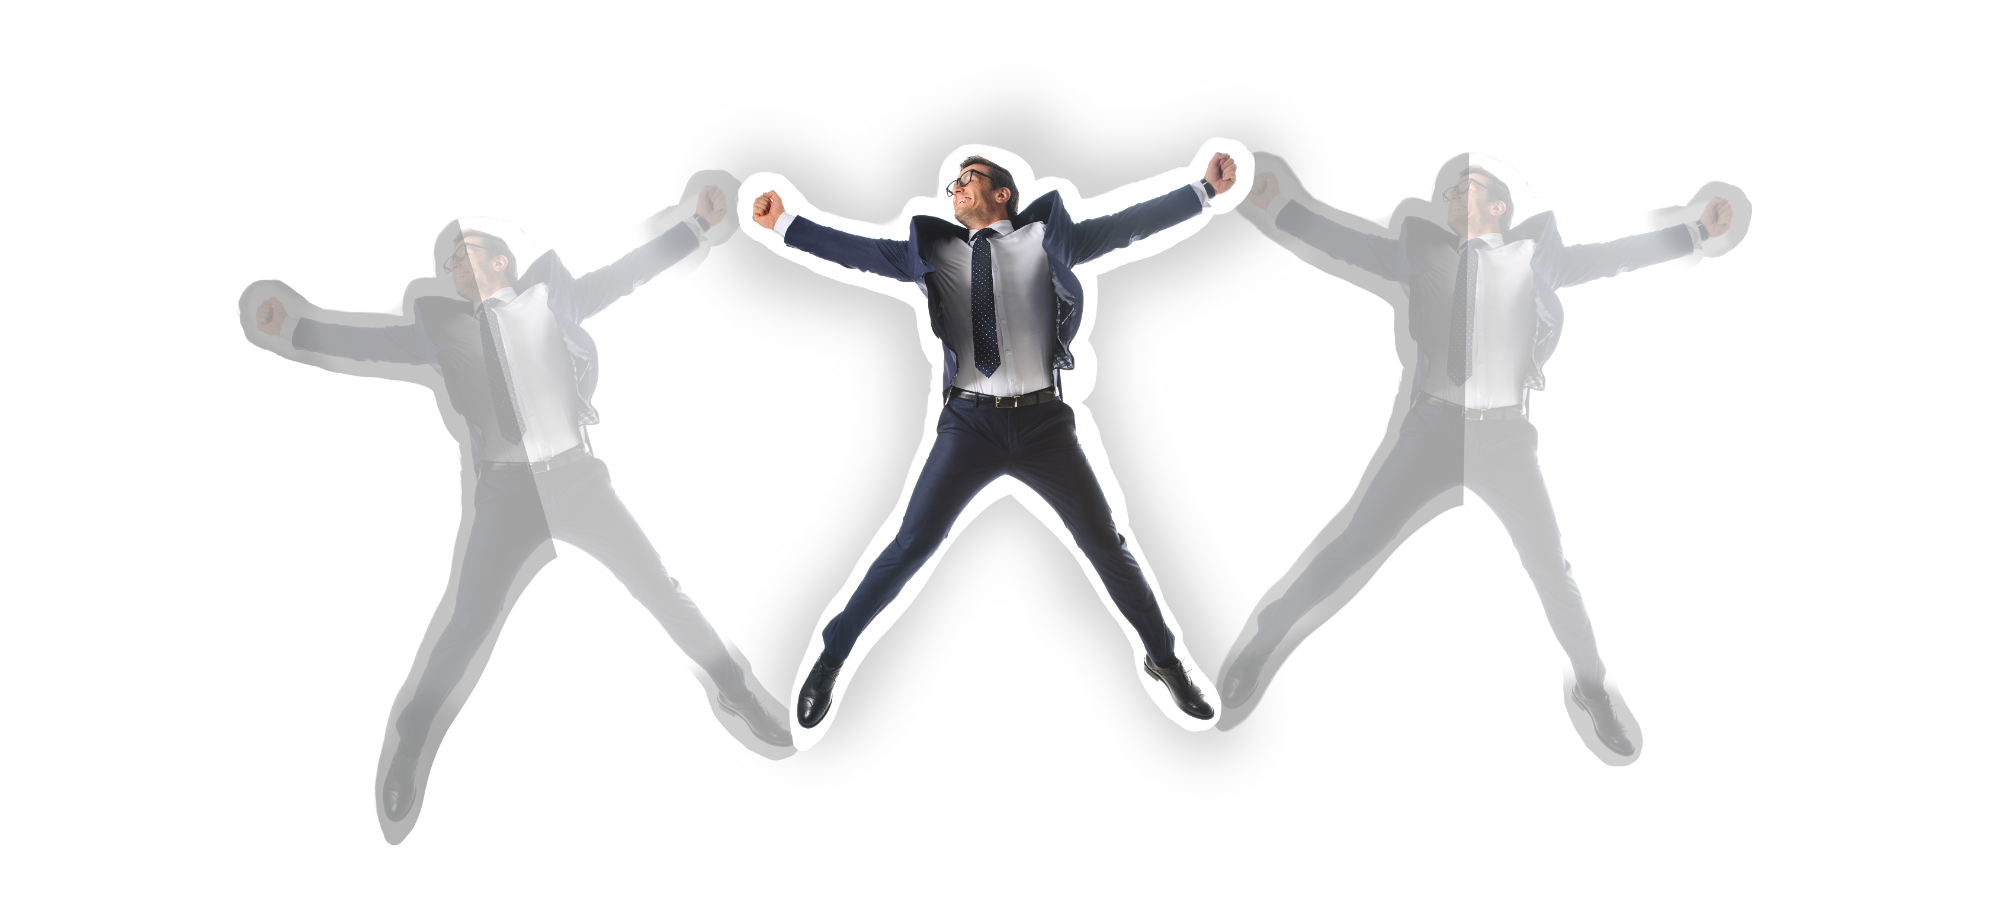 Image of a man stretched out, to represent being too busy